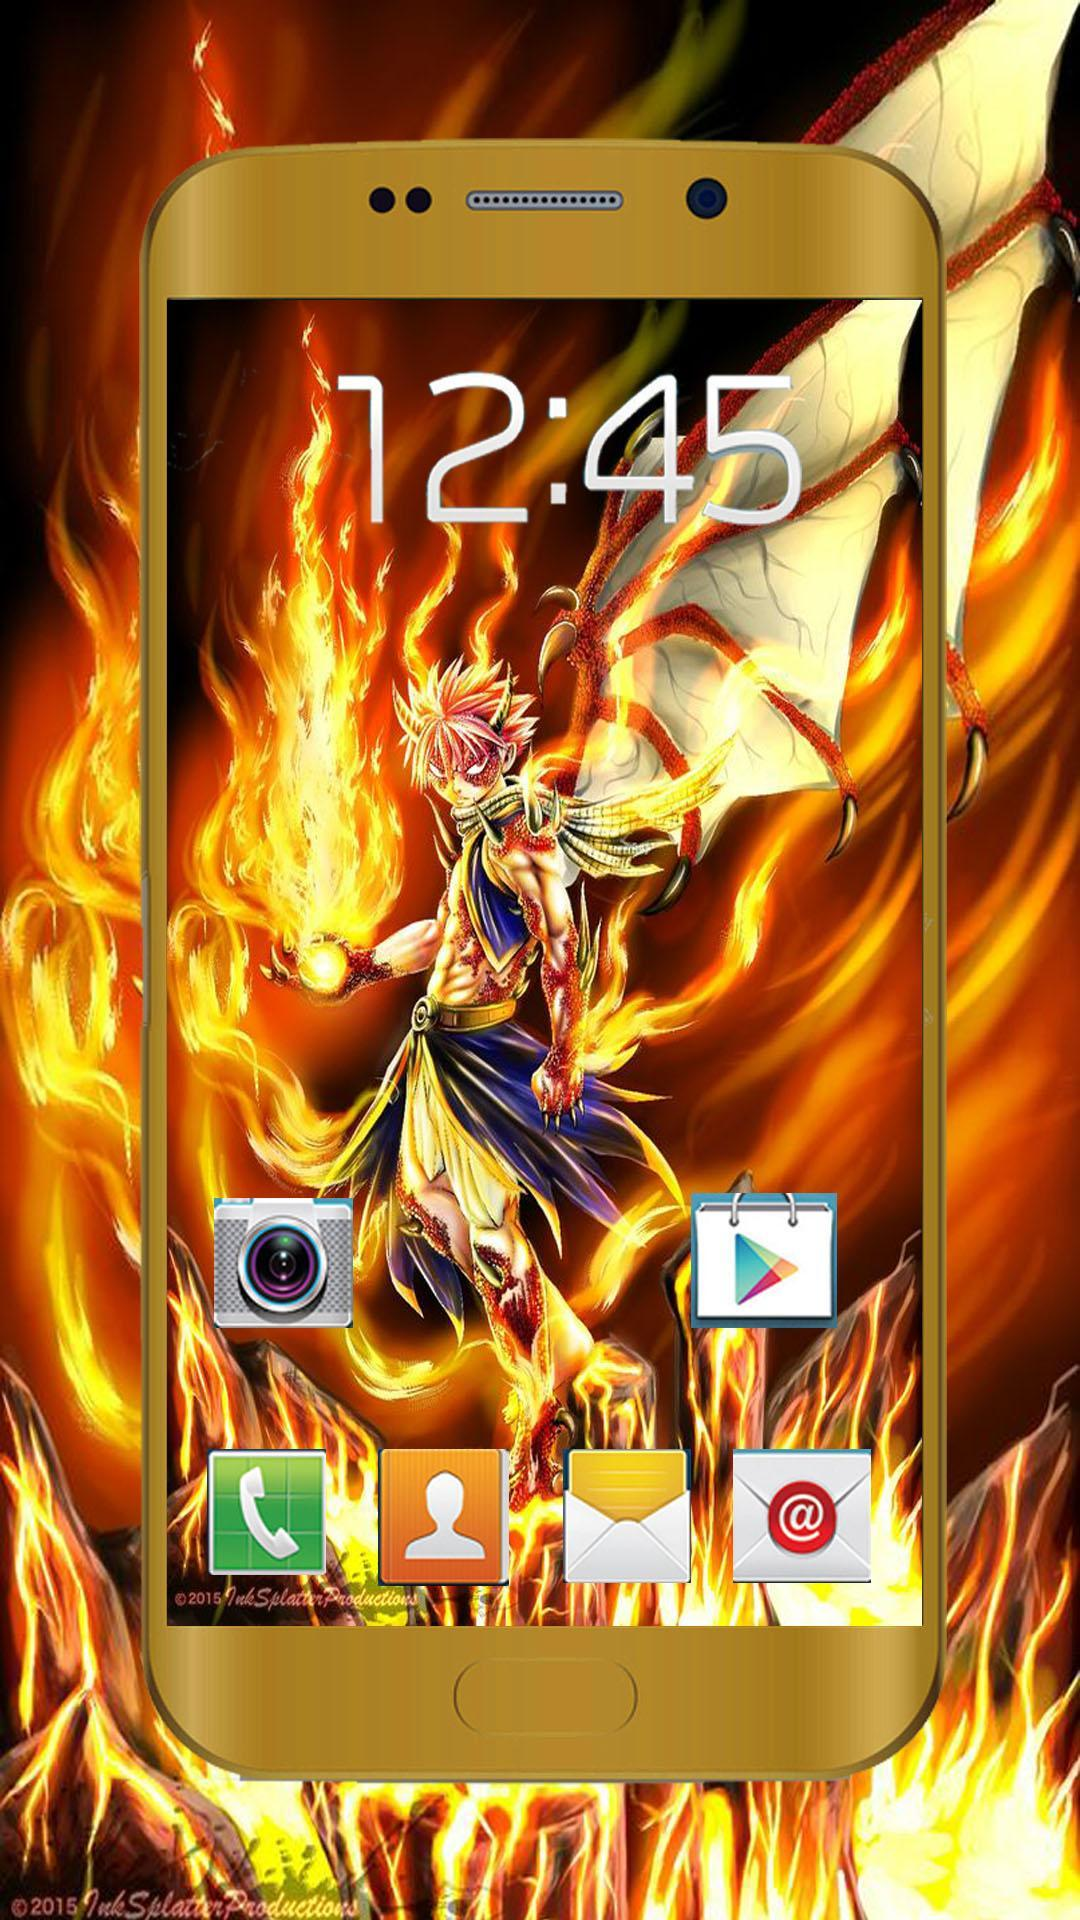 2000 Wallpaper Android Fairy Tail  Terbaik